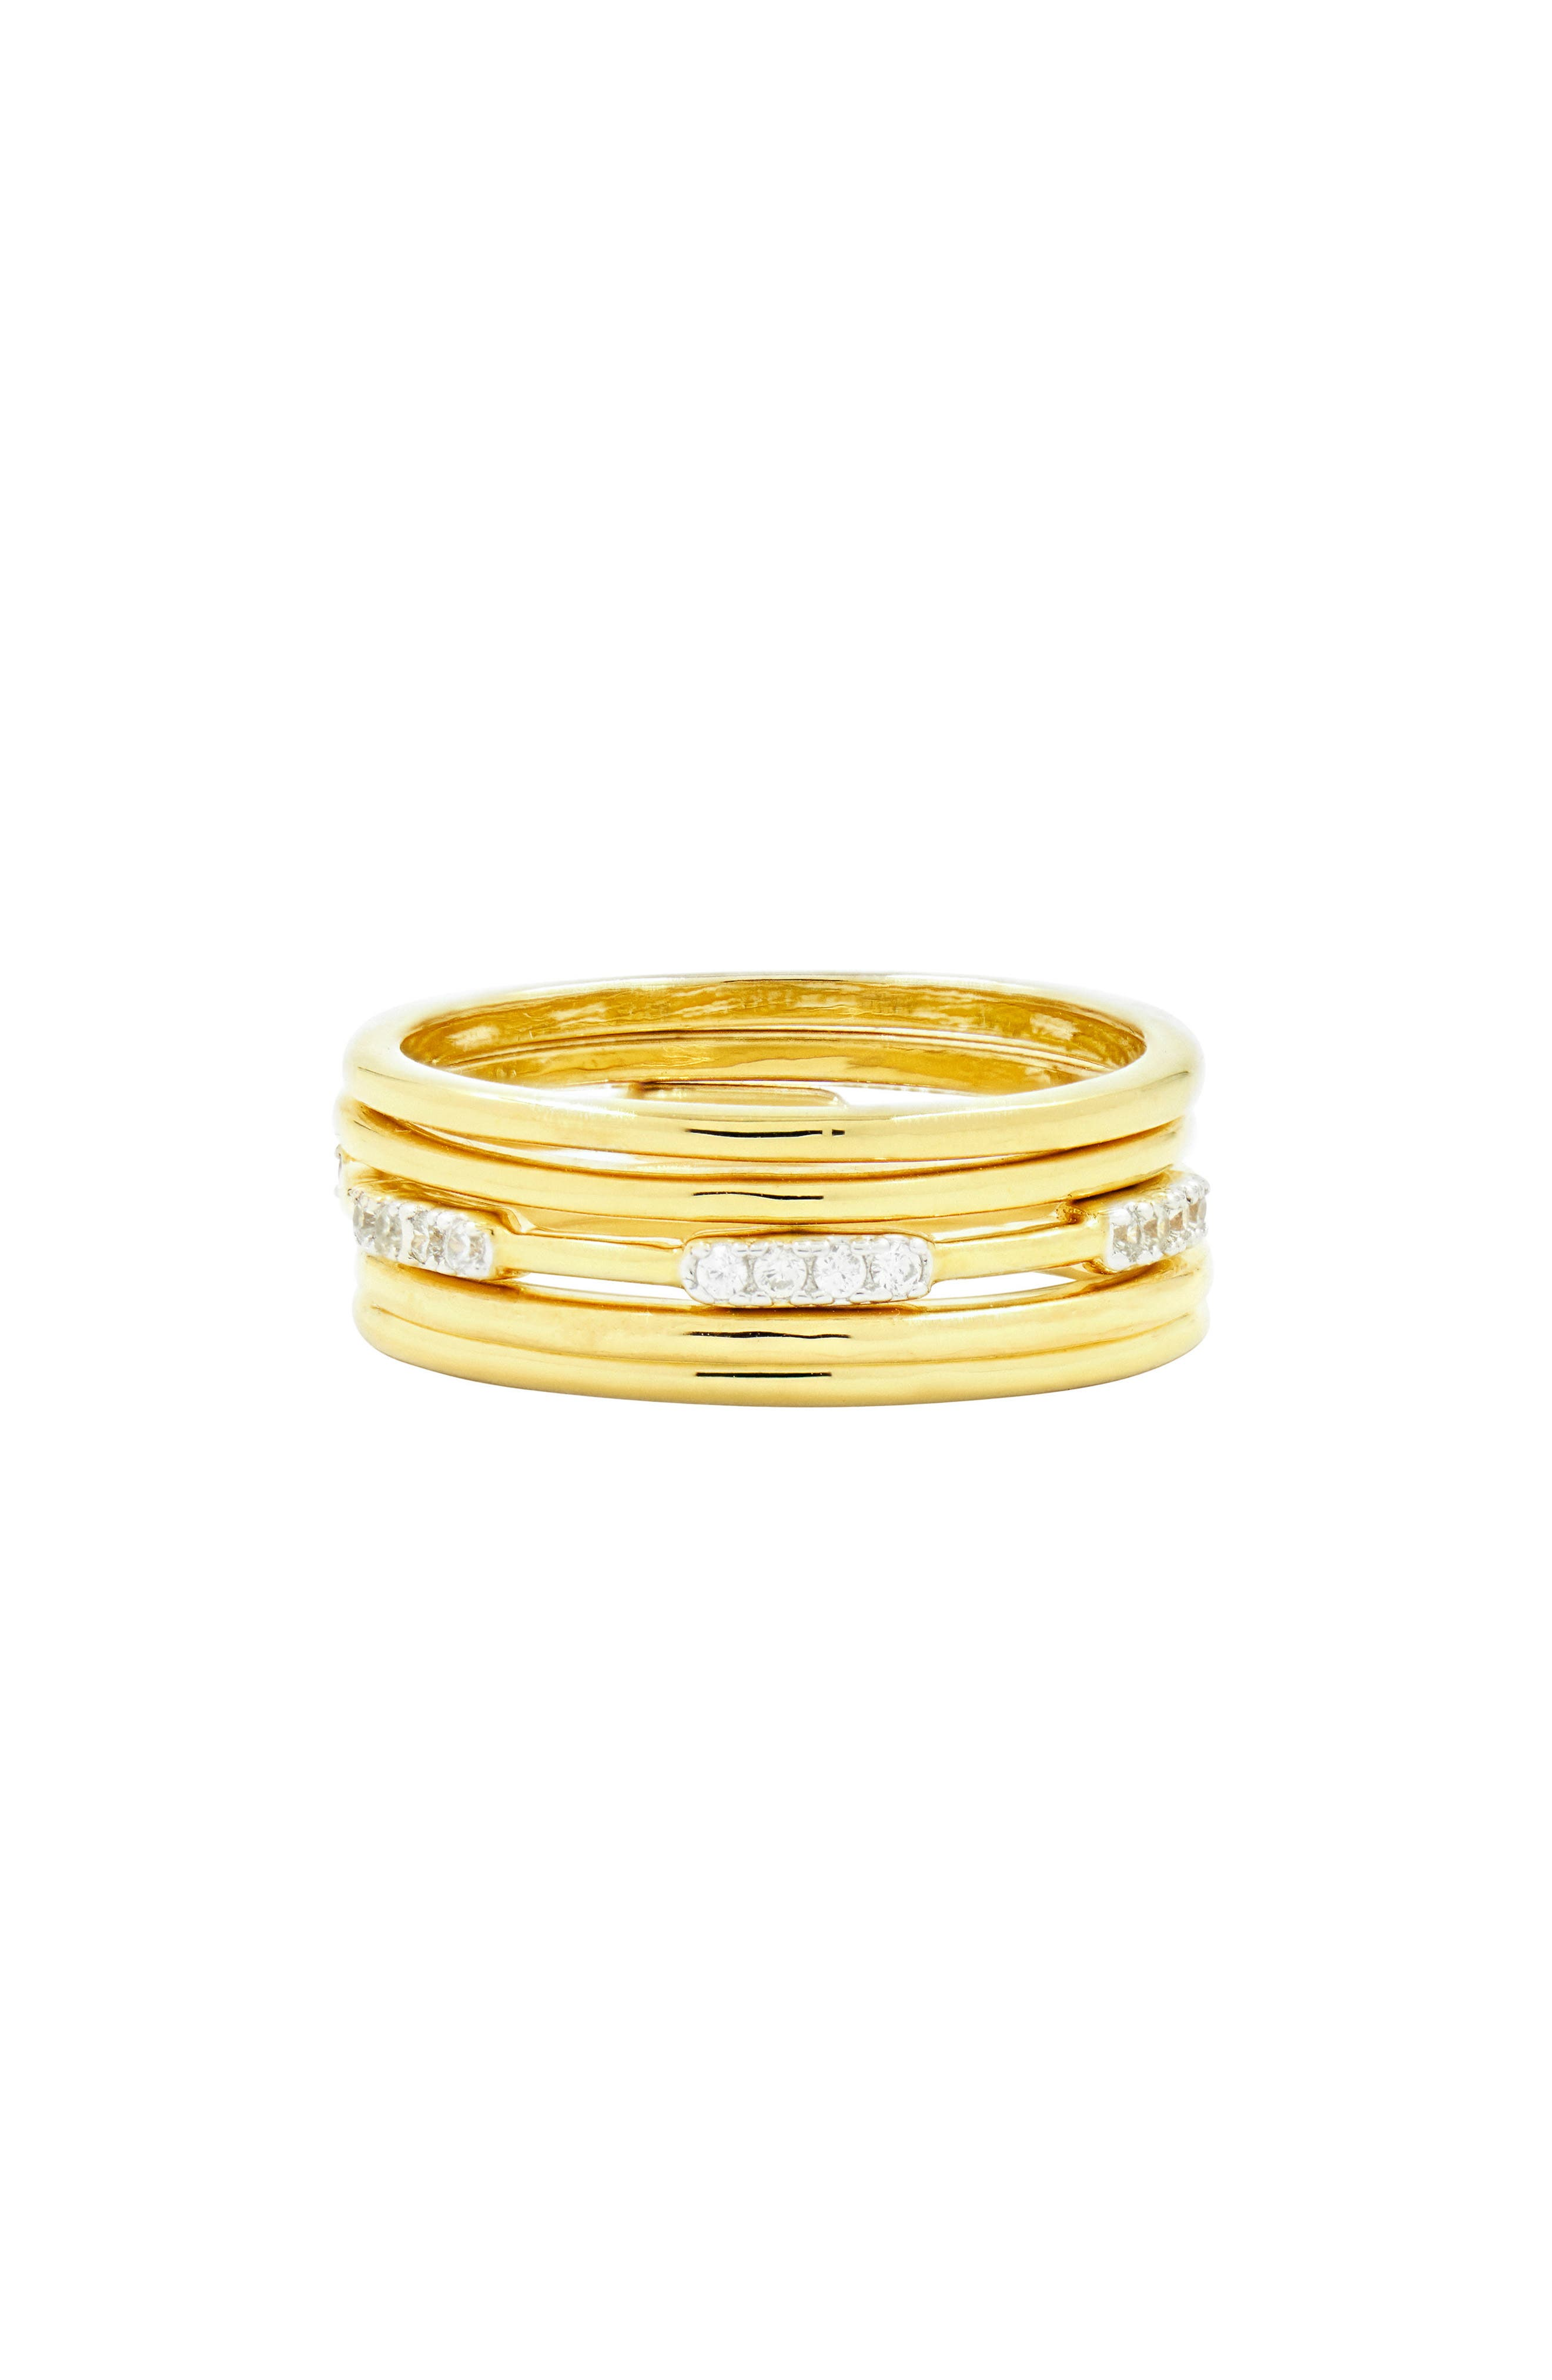 Radiance Stacking Ring,                         Main,                         color, Silver/ Gold